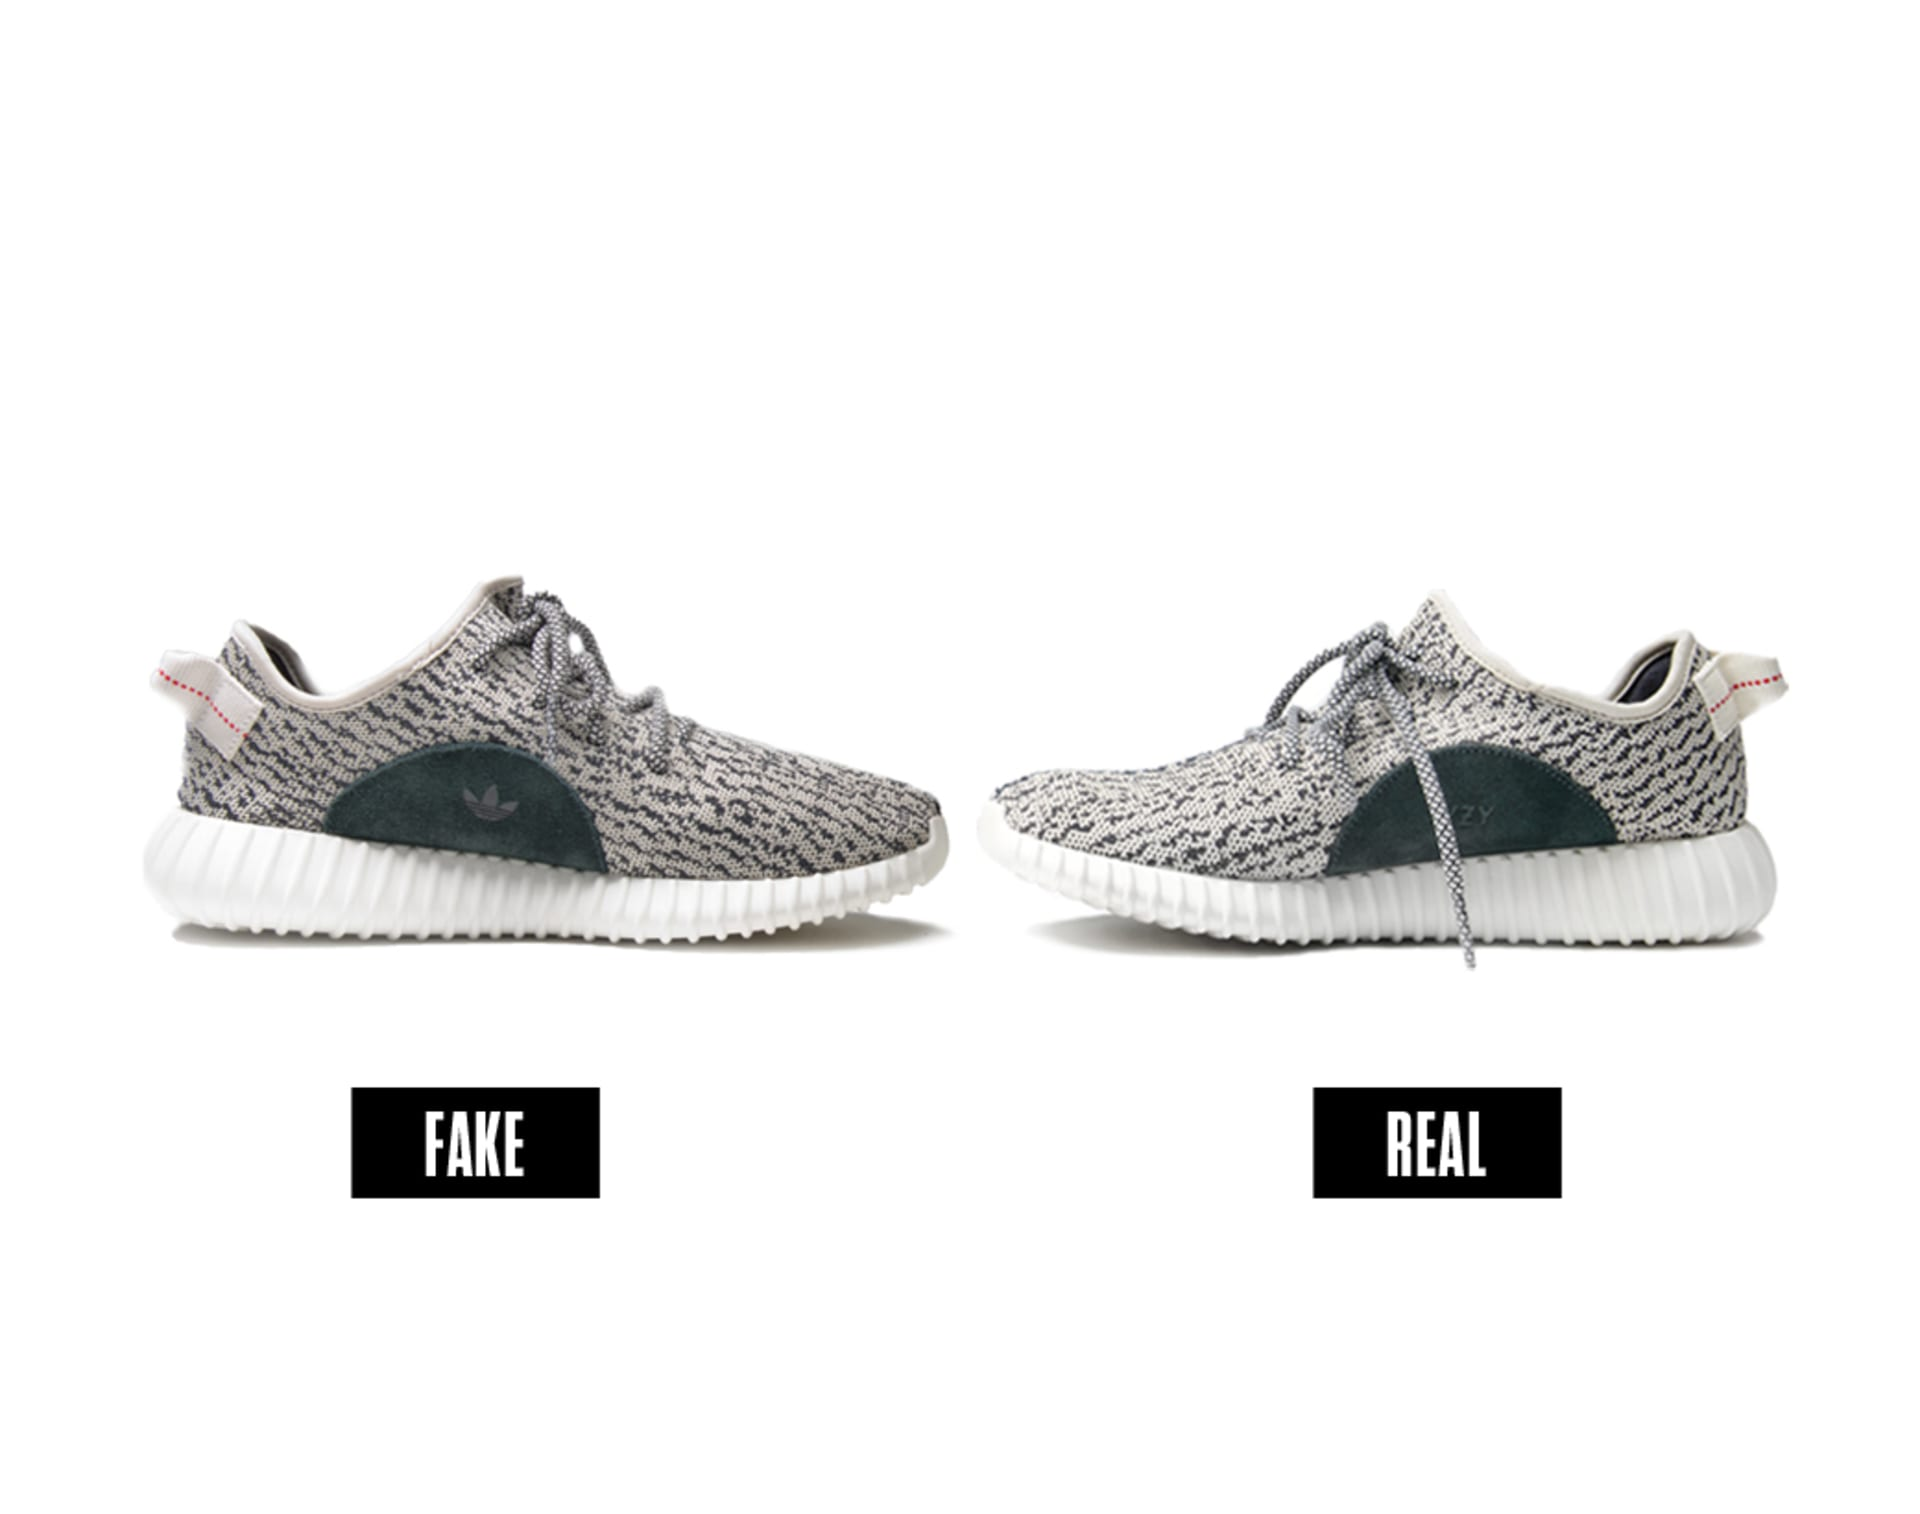 da7a1b6678afa Fake vs. Real Yeezy 350 Boosts. Photo by Liz Barclay.